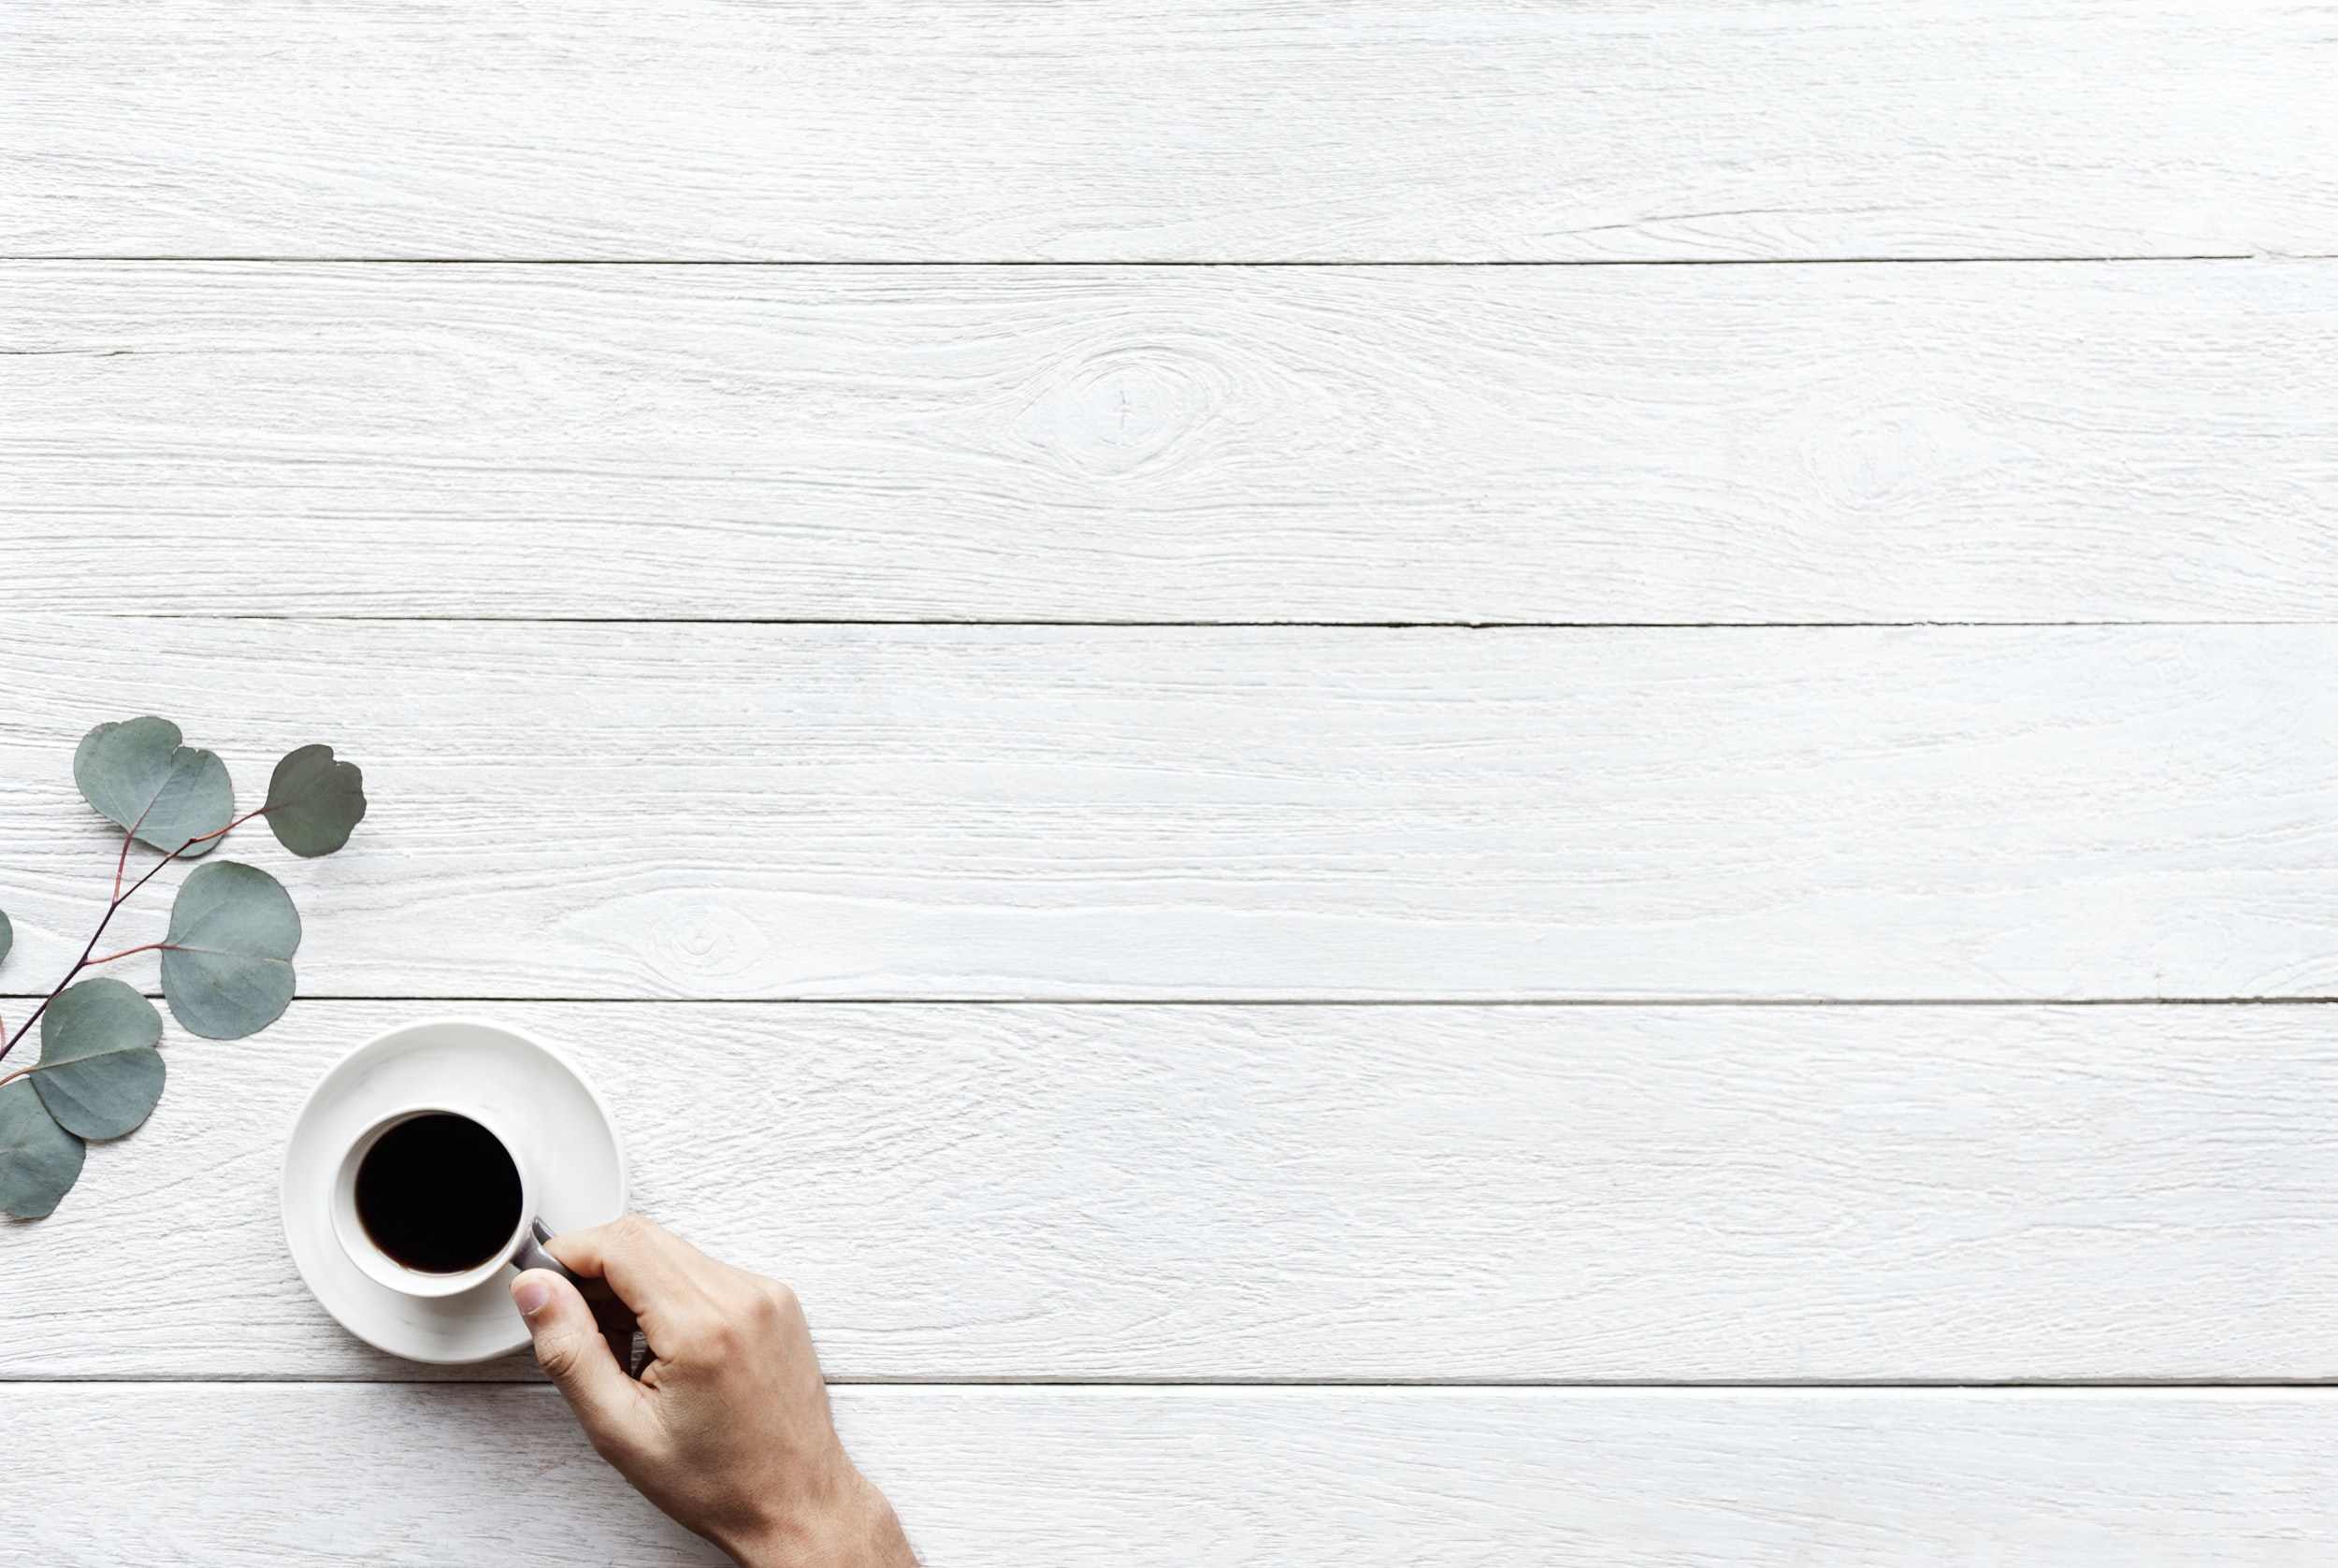 person holding white cup filled with coffee